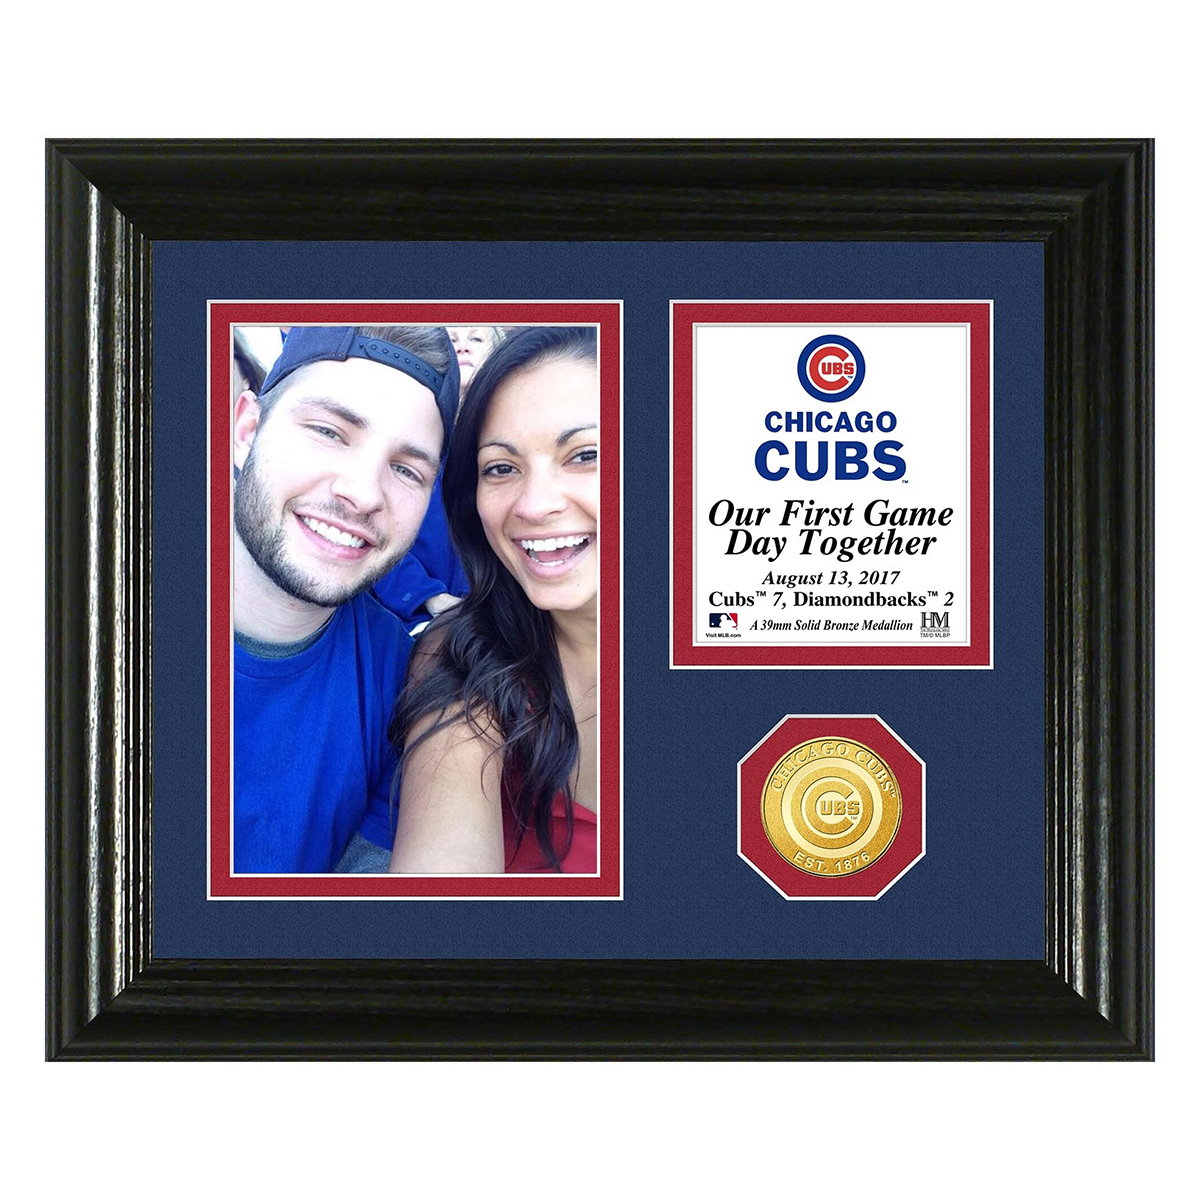 Chicago Cubs Game Day Memories Personalized Photo Frame